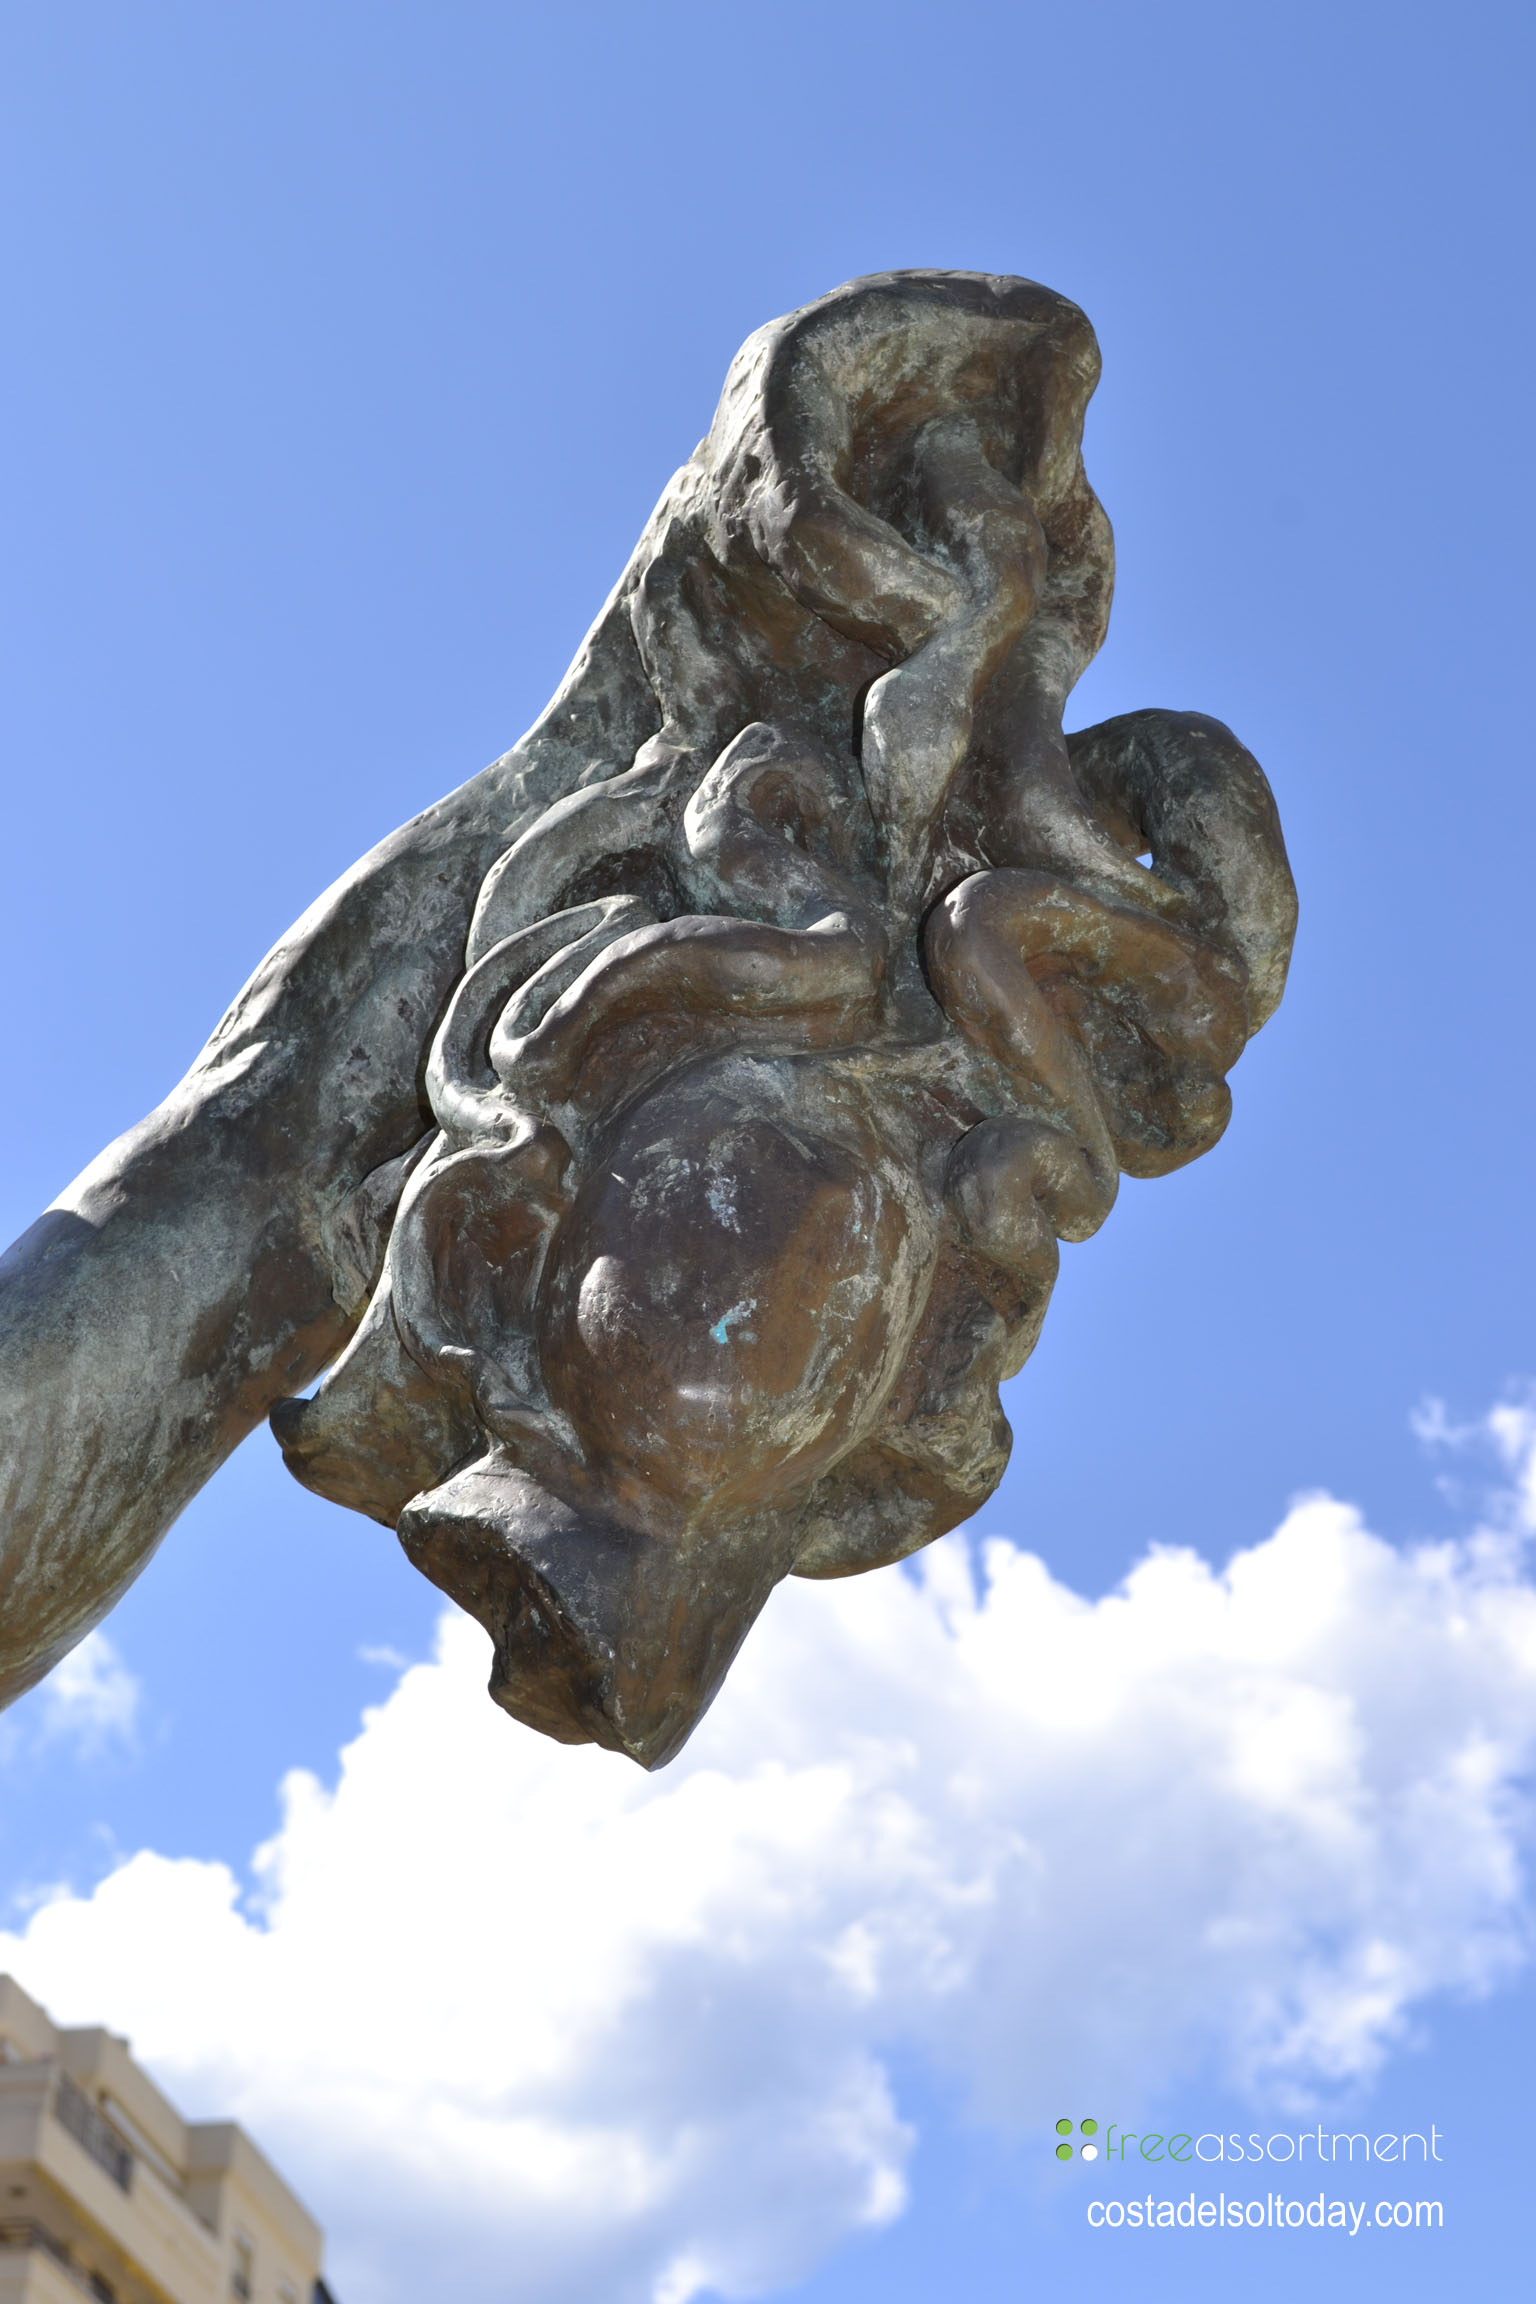 The head of Medusa, held by Perseus, bronze statue by Salvador Dali on the Avenida del Mar in Marbella, Spain - One of ten spectacular Dali sculptures 02